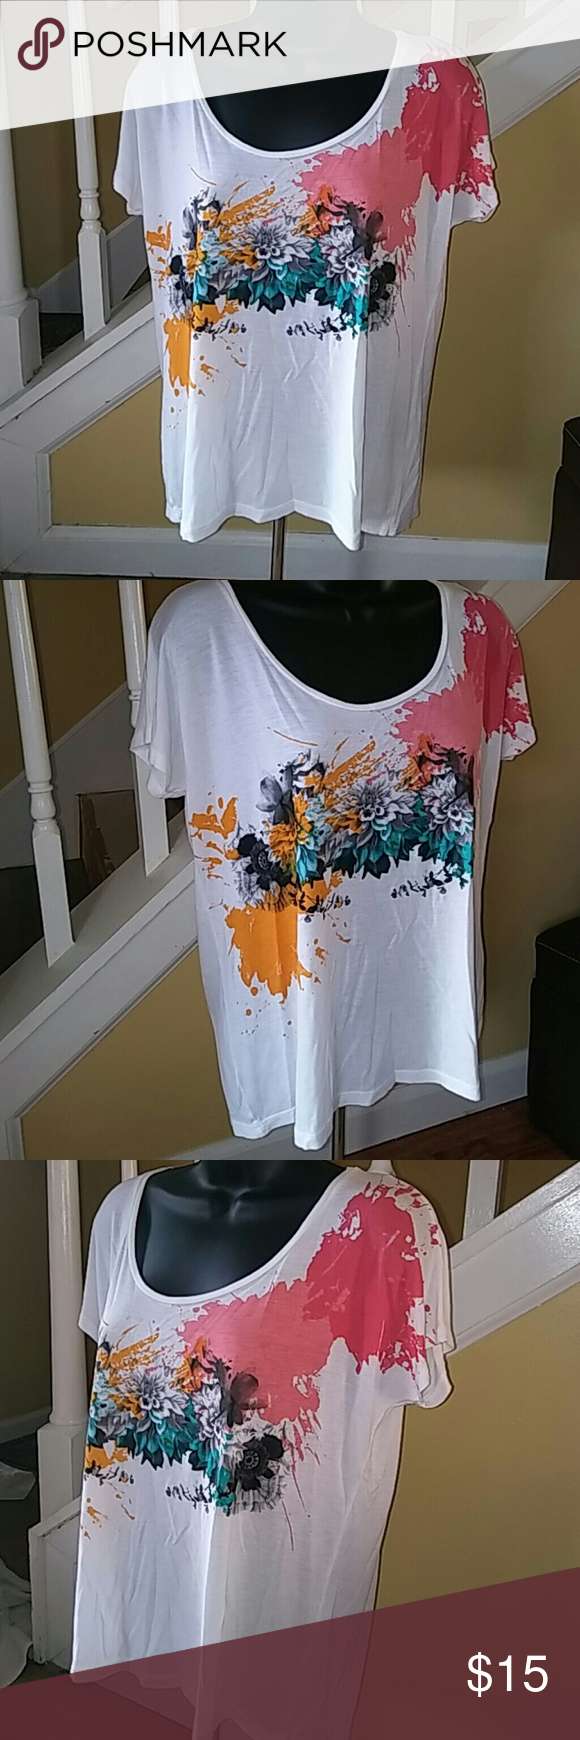 Beautiful top by Zara Small Beautiful White with multi color splash and black floral print on front. Zips up back with zipper.  If you have any questions please feel free to message! Reasonable offers will be entertained....just use the offer button. Zara Tops Blouses